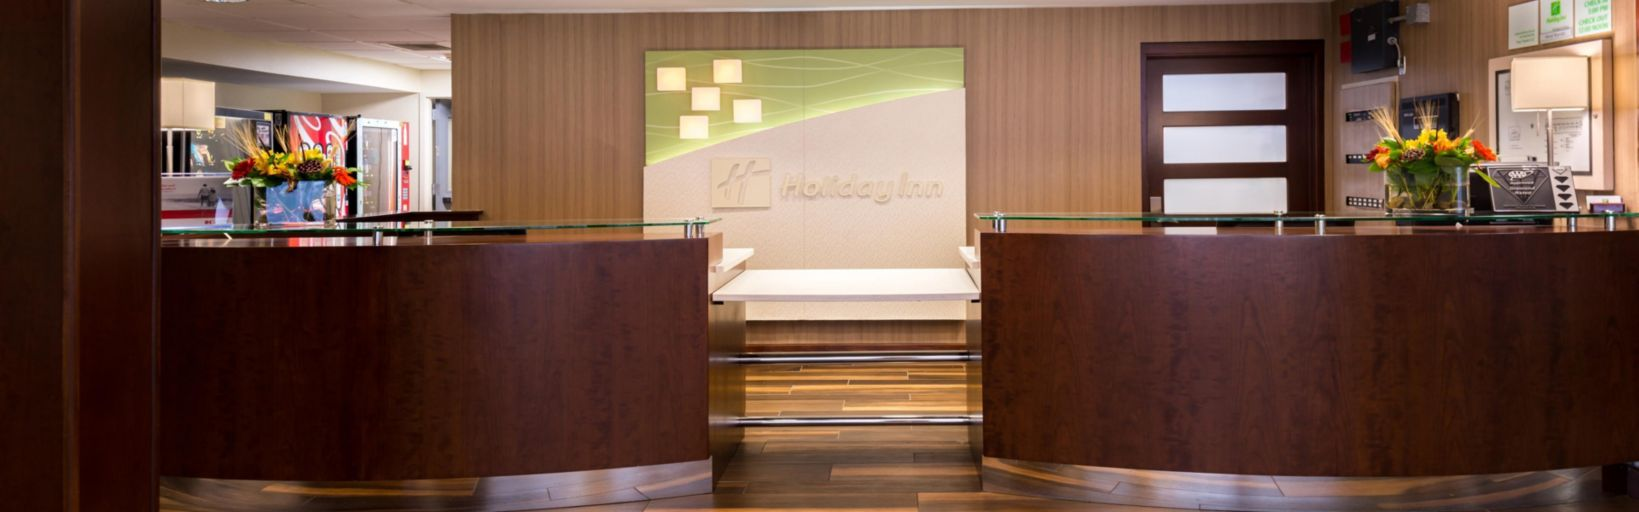 Holiday Inn Hotel Suites Warren By IHG